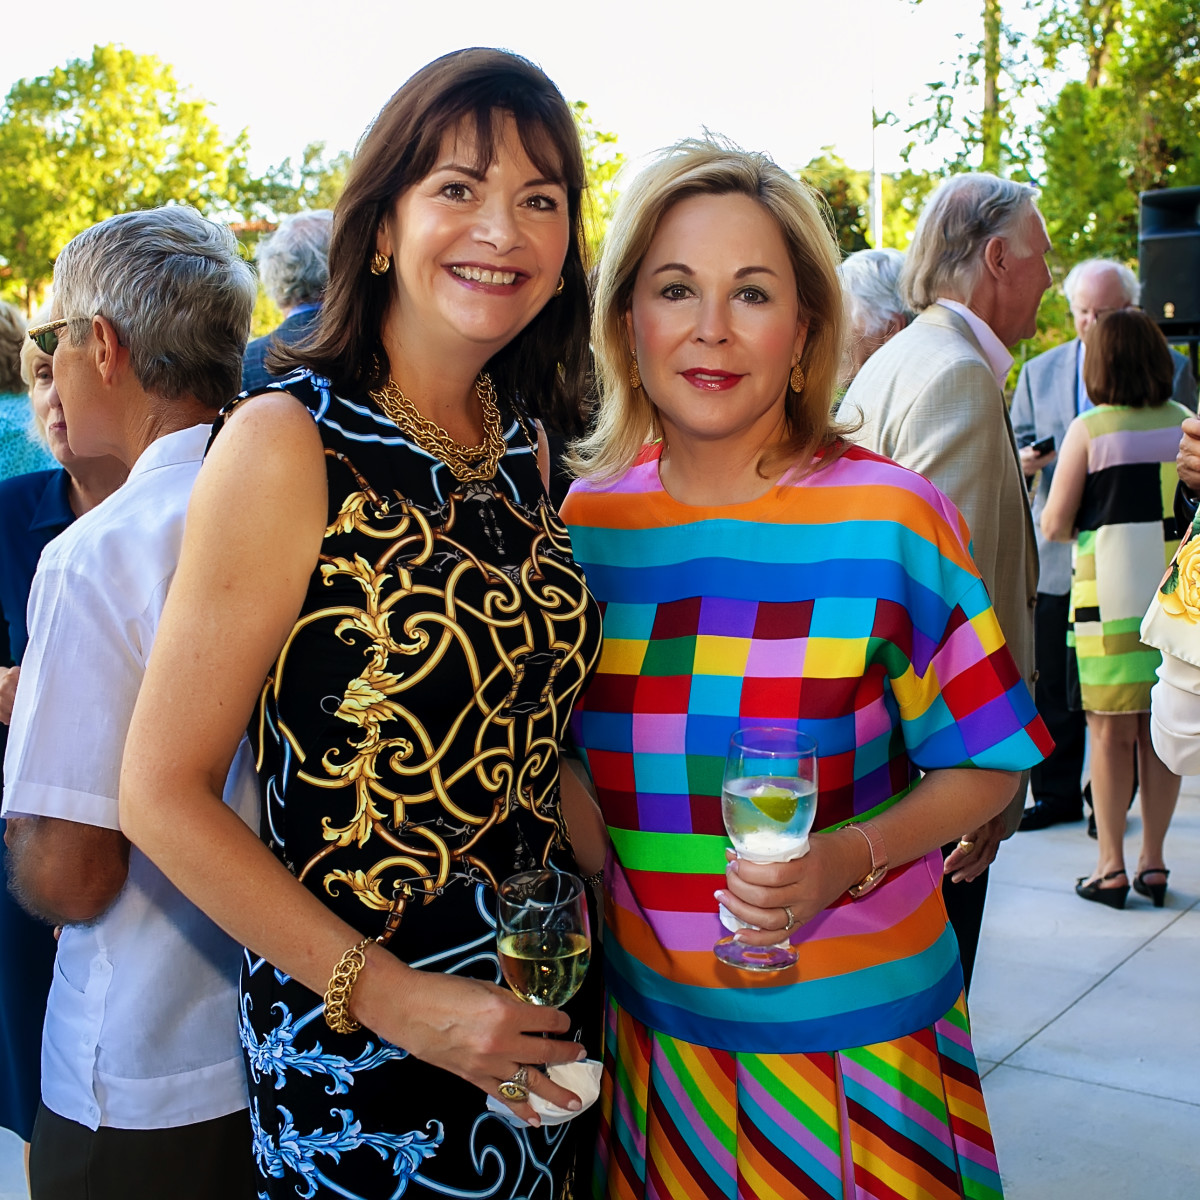 News, Shelby, Lost Lake, Dunlavy party, Sept. 2015 Roxanne Neumann, Nancy Kinder